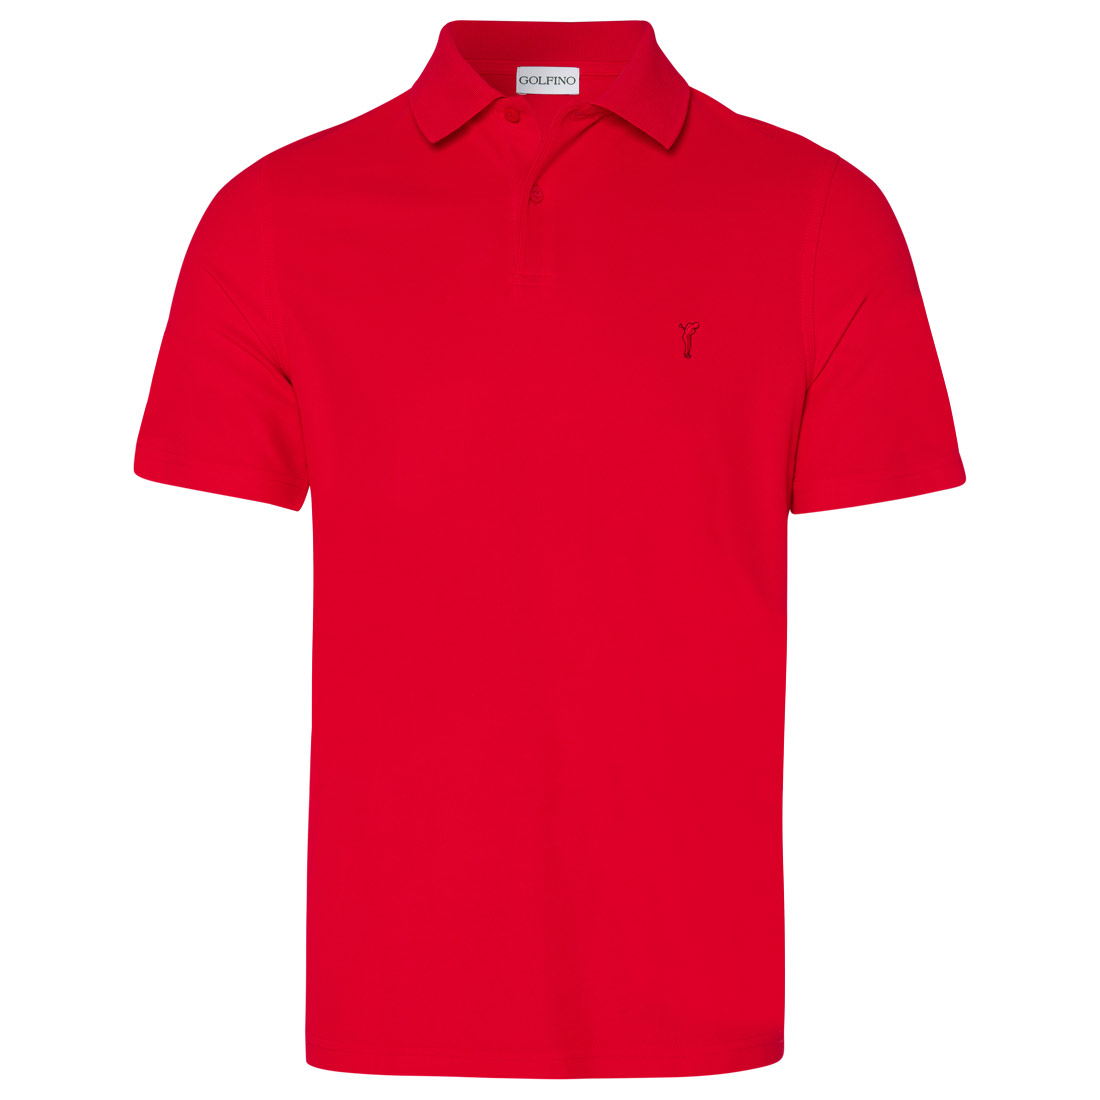 Classic men's short-sleeved functional golf piqué.